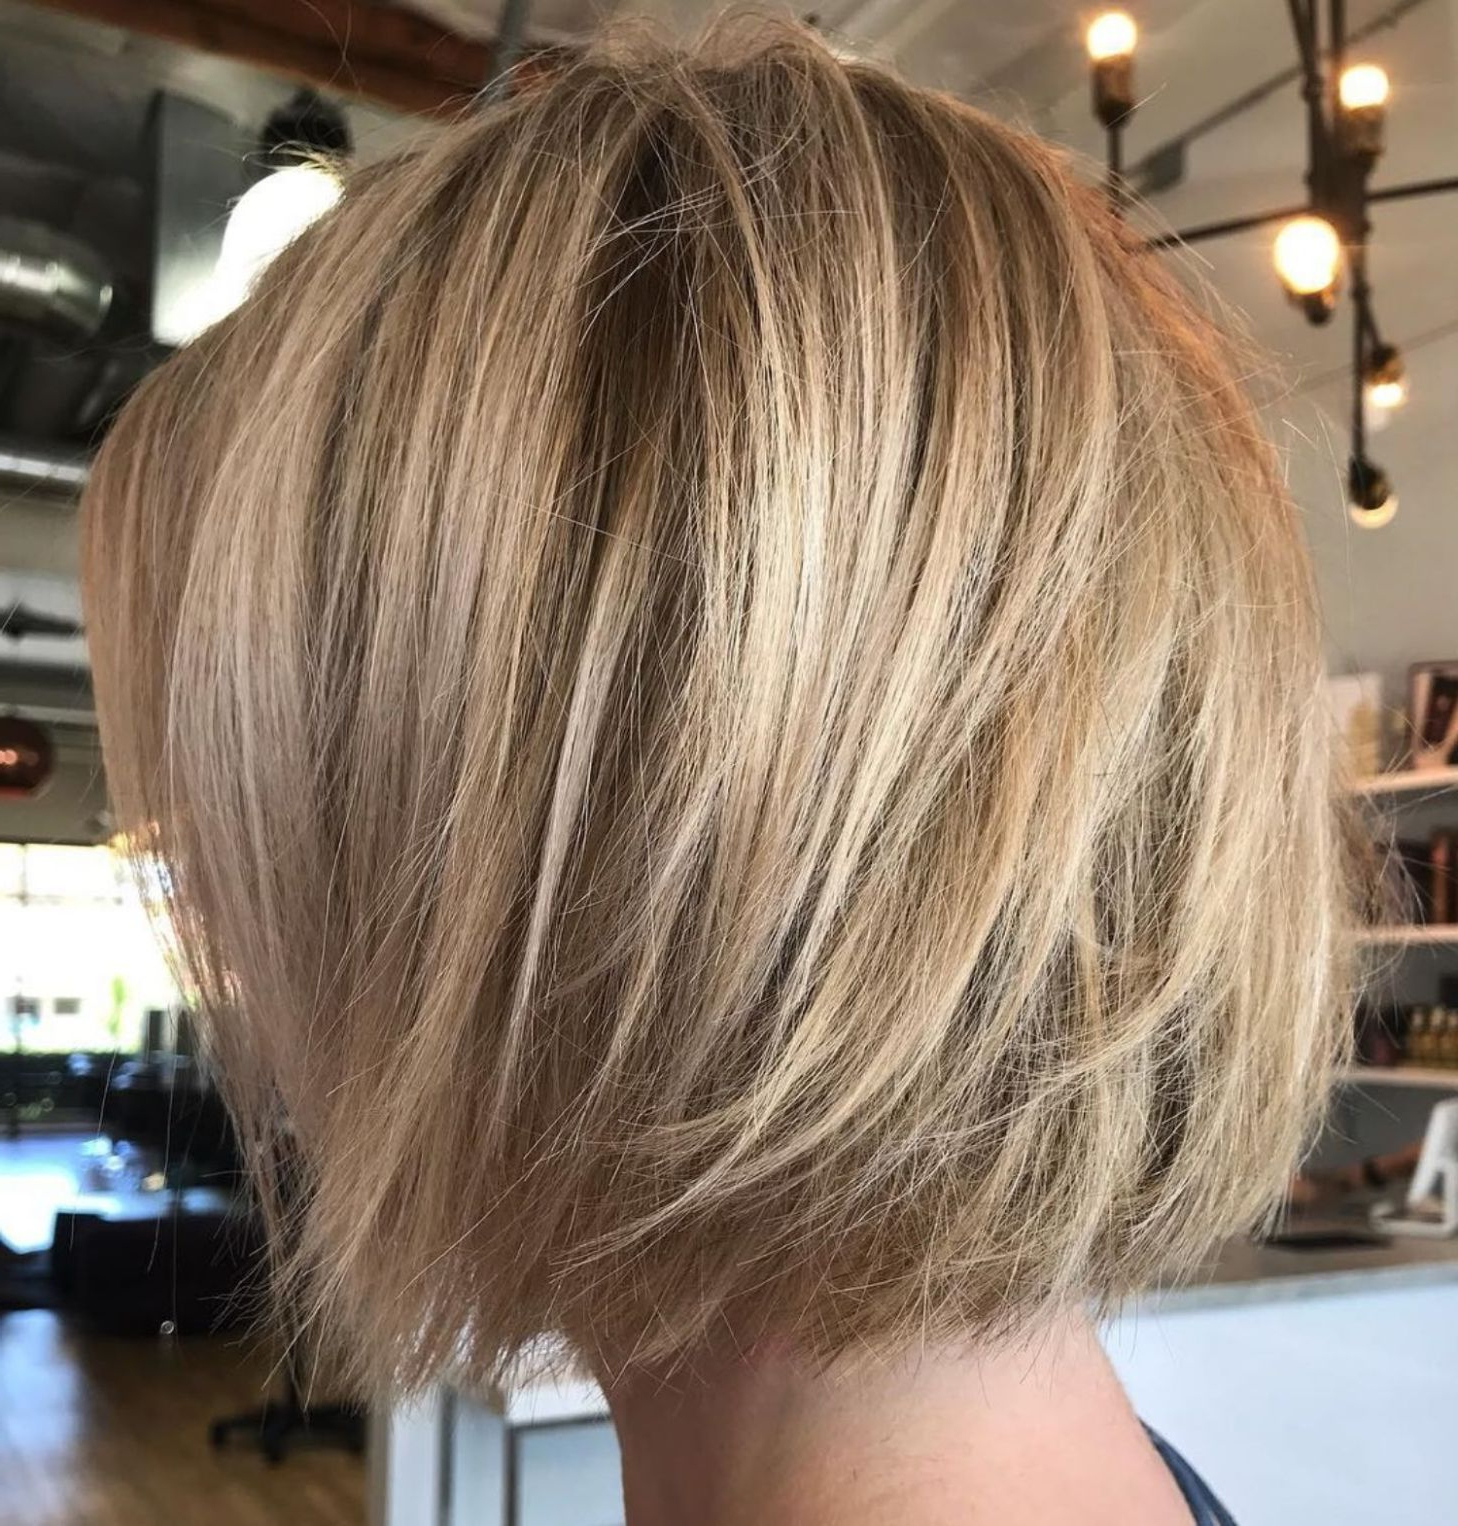 60 Layered Bob Styles: Modern Haircuts With Layers For Any Regarding Straight Wispy Jaw Length Bob Hairstyles (Gallery 8 of 20)